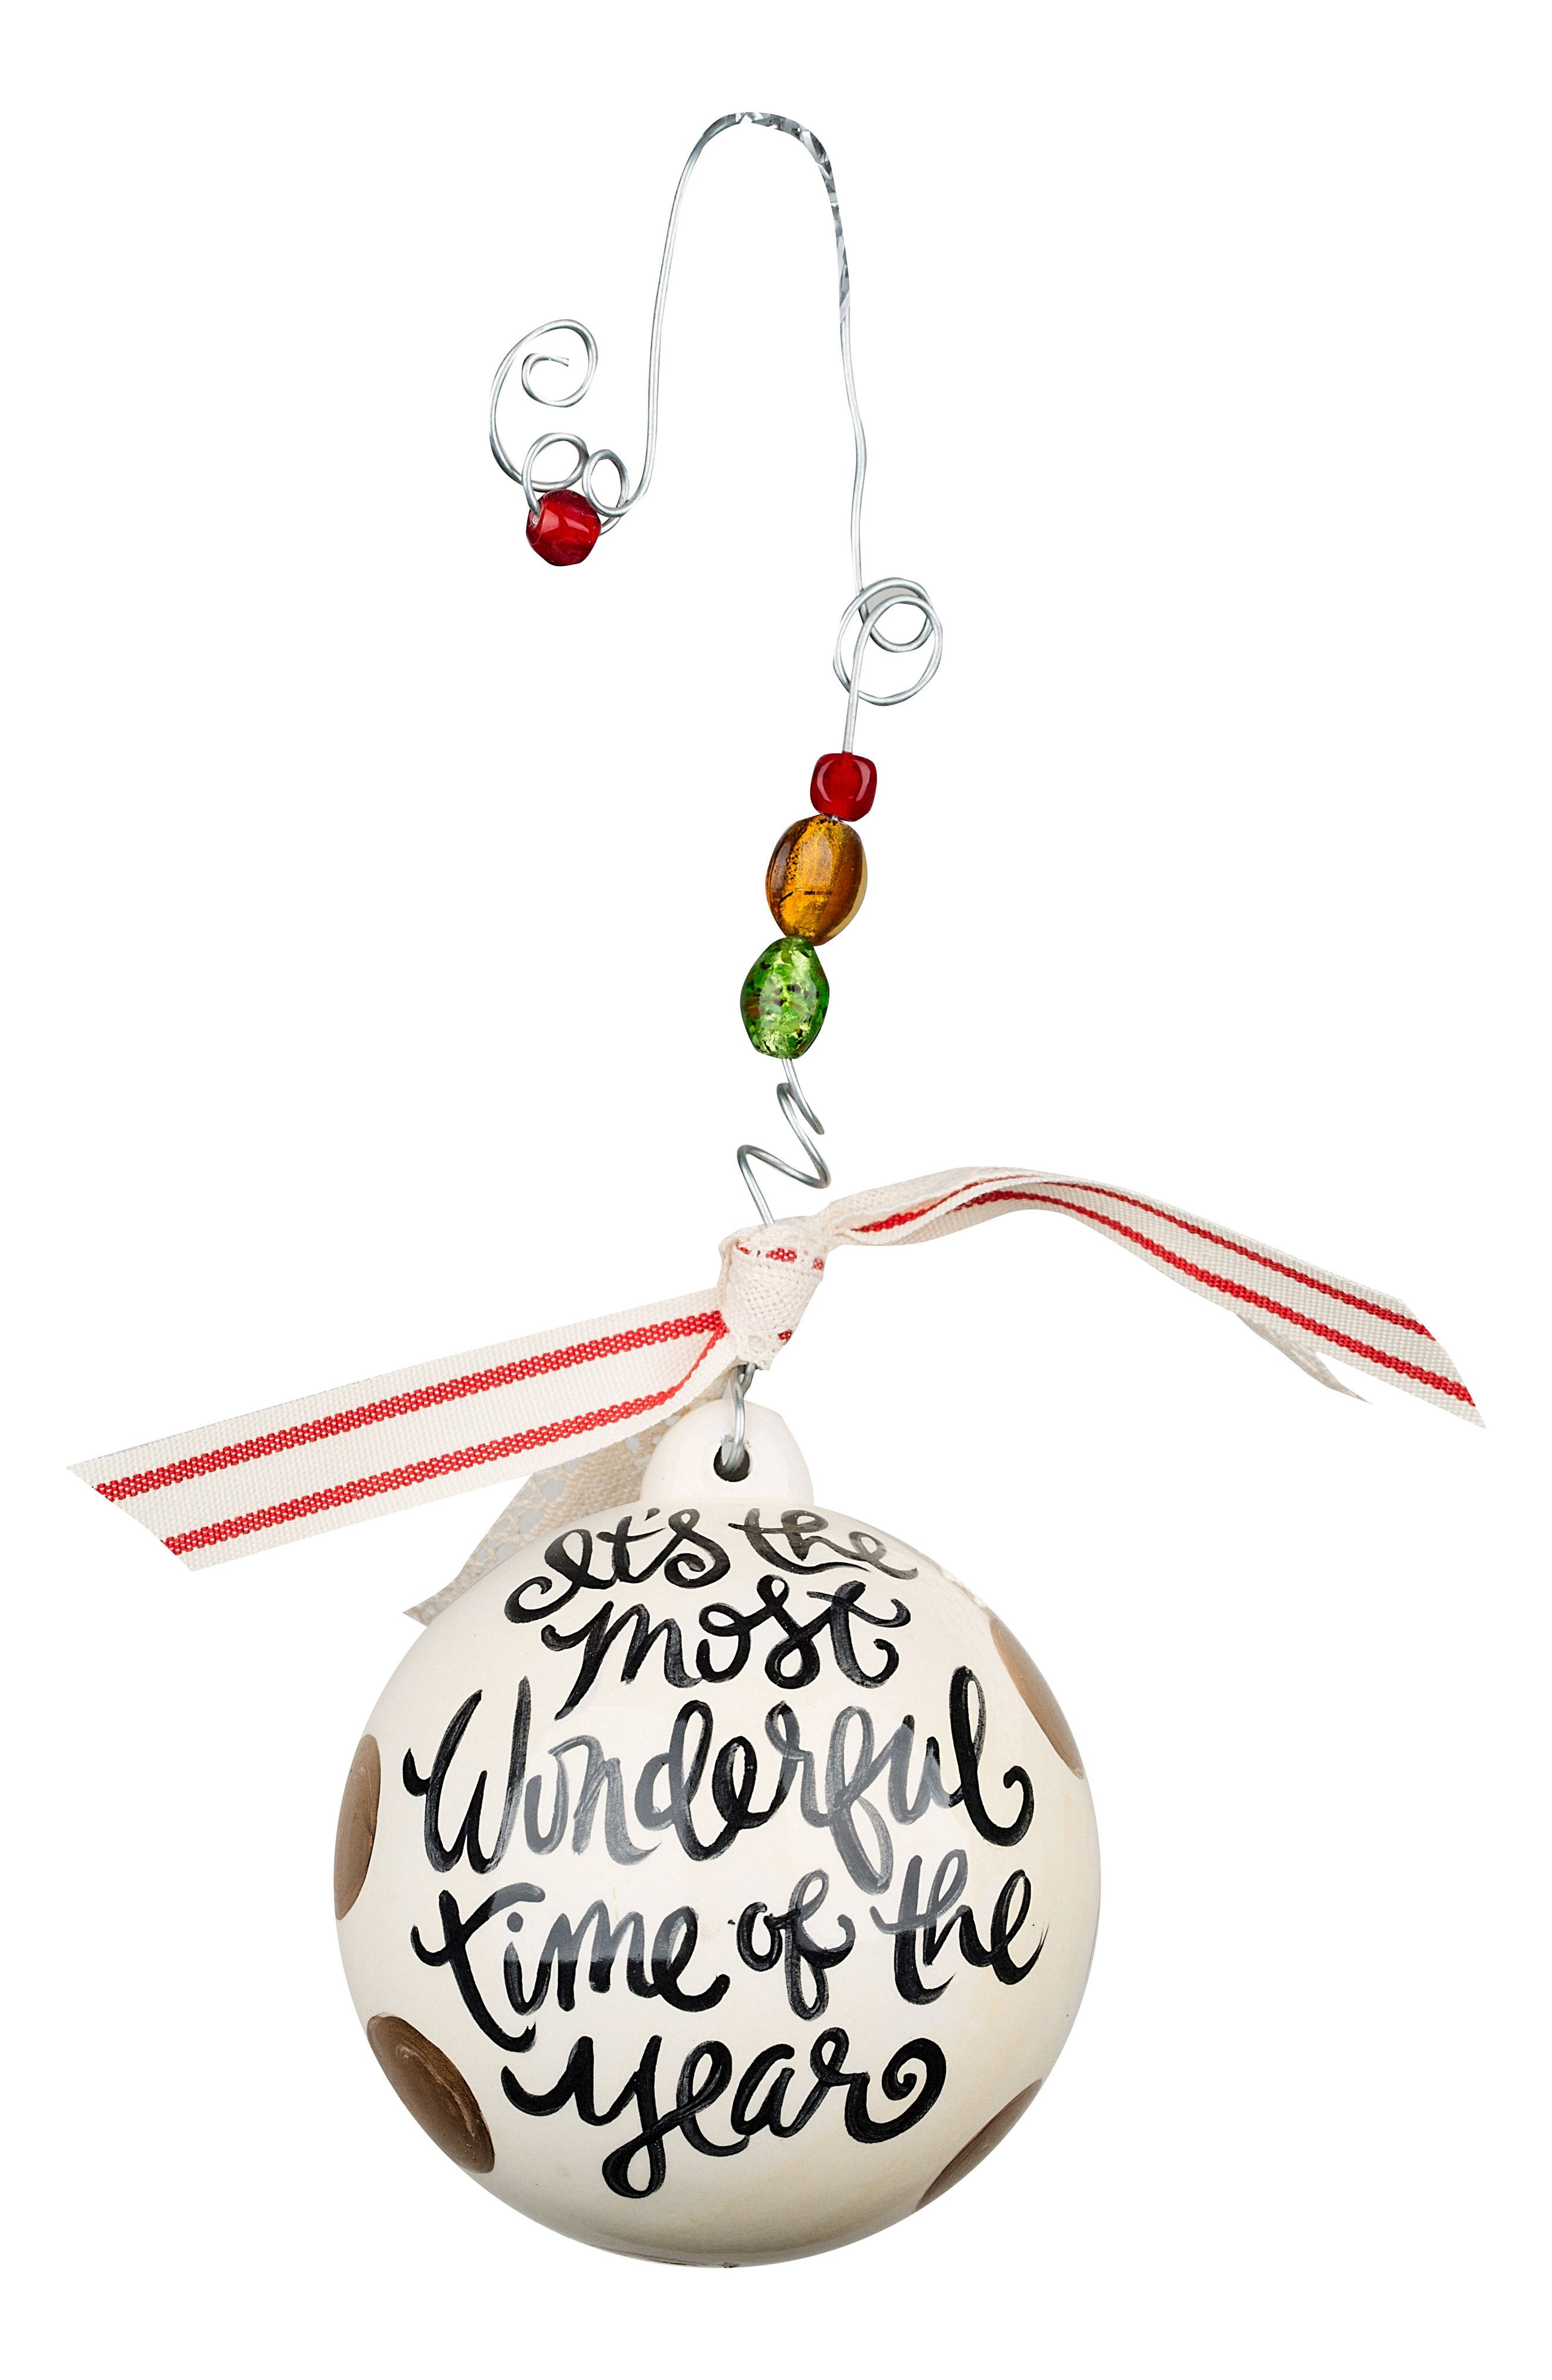 Most Wonderful Time of the Year Ball Ornament,                             Main thumbnail 1, color,                             Green/ Multi